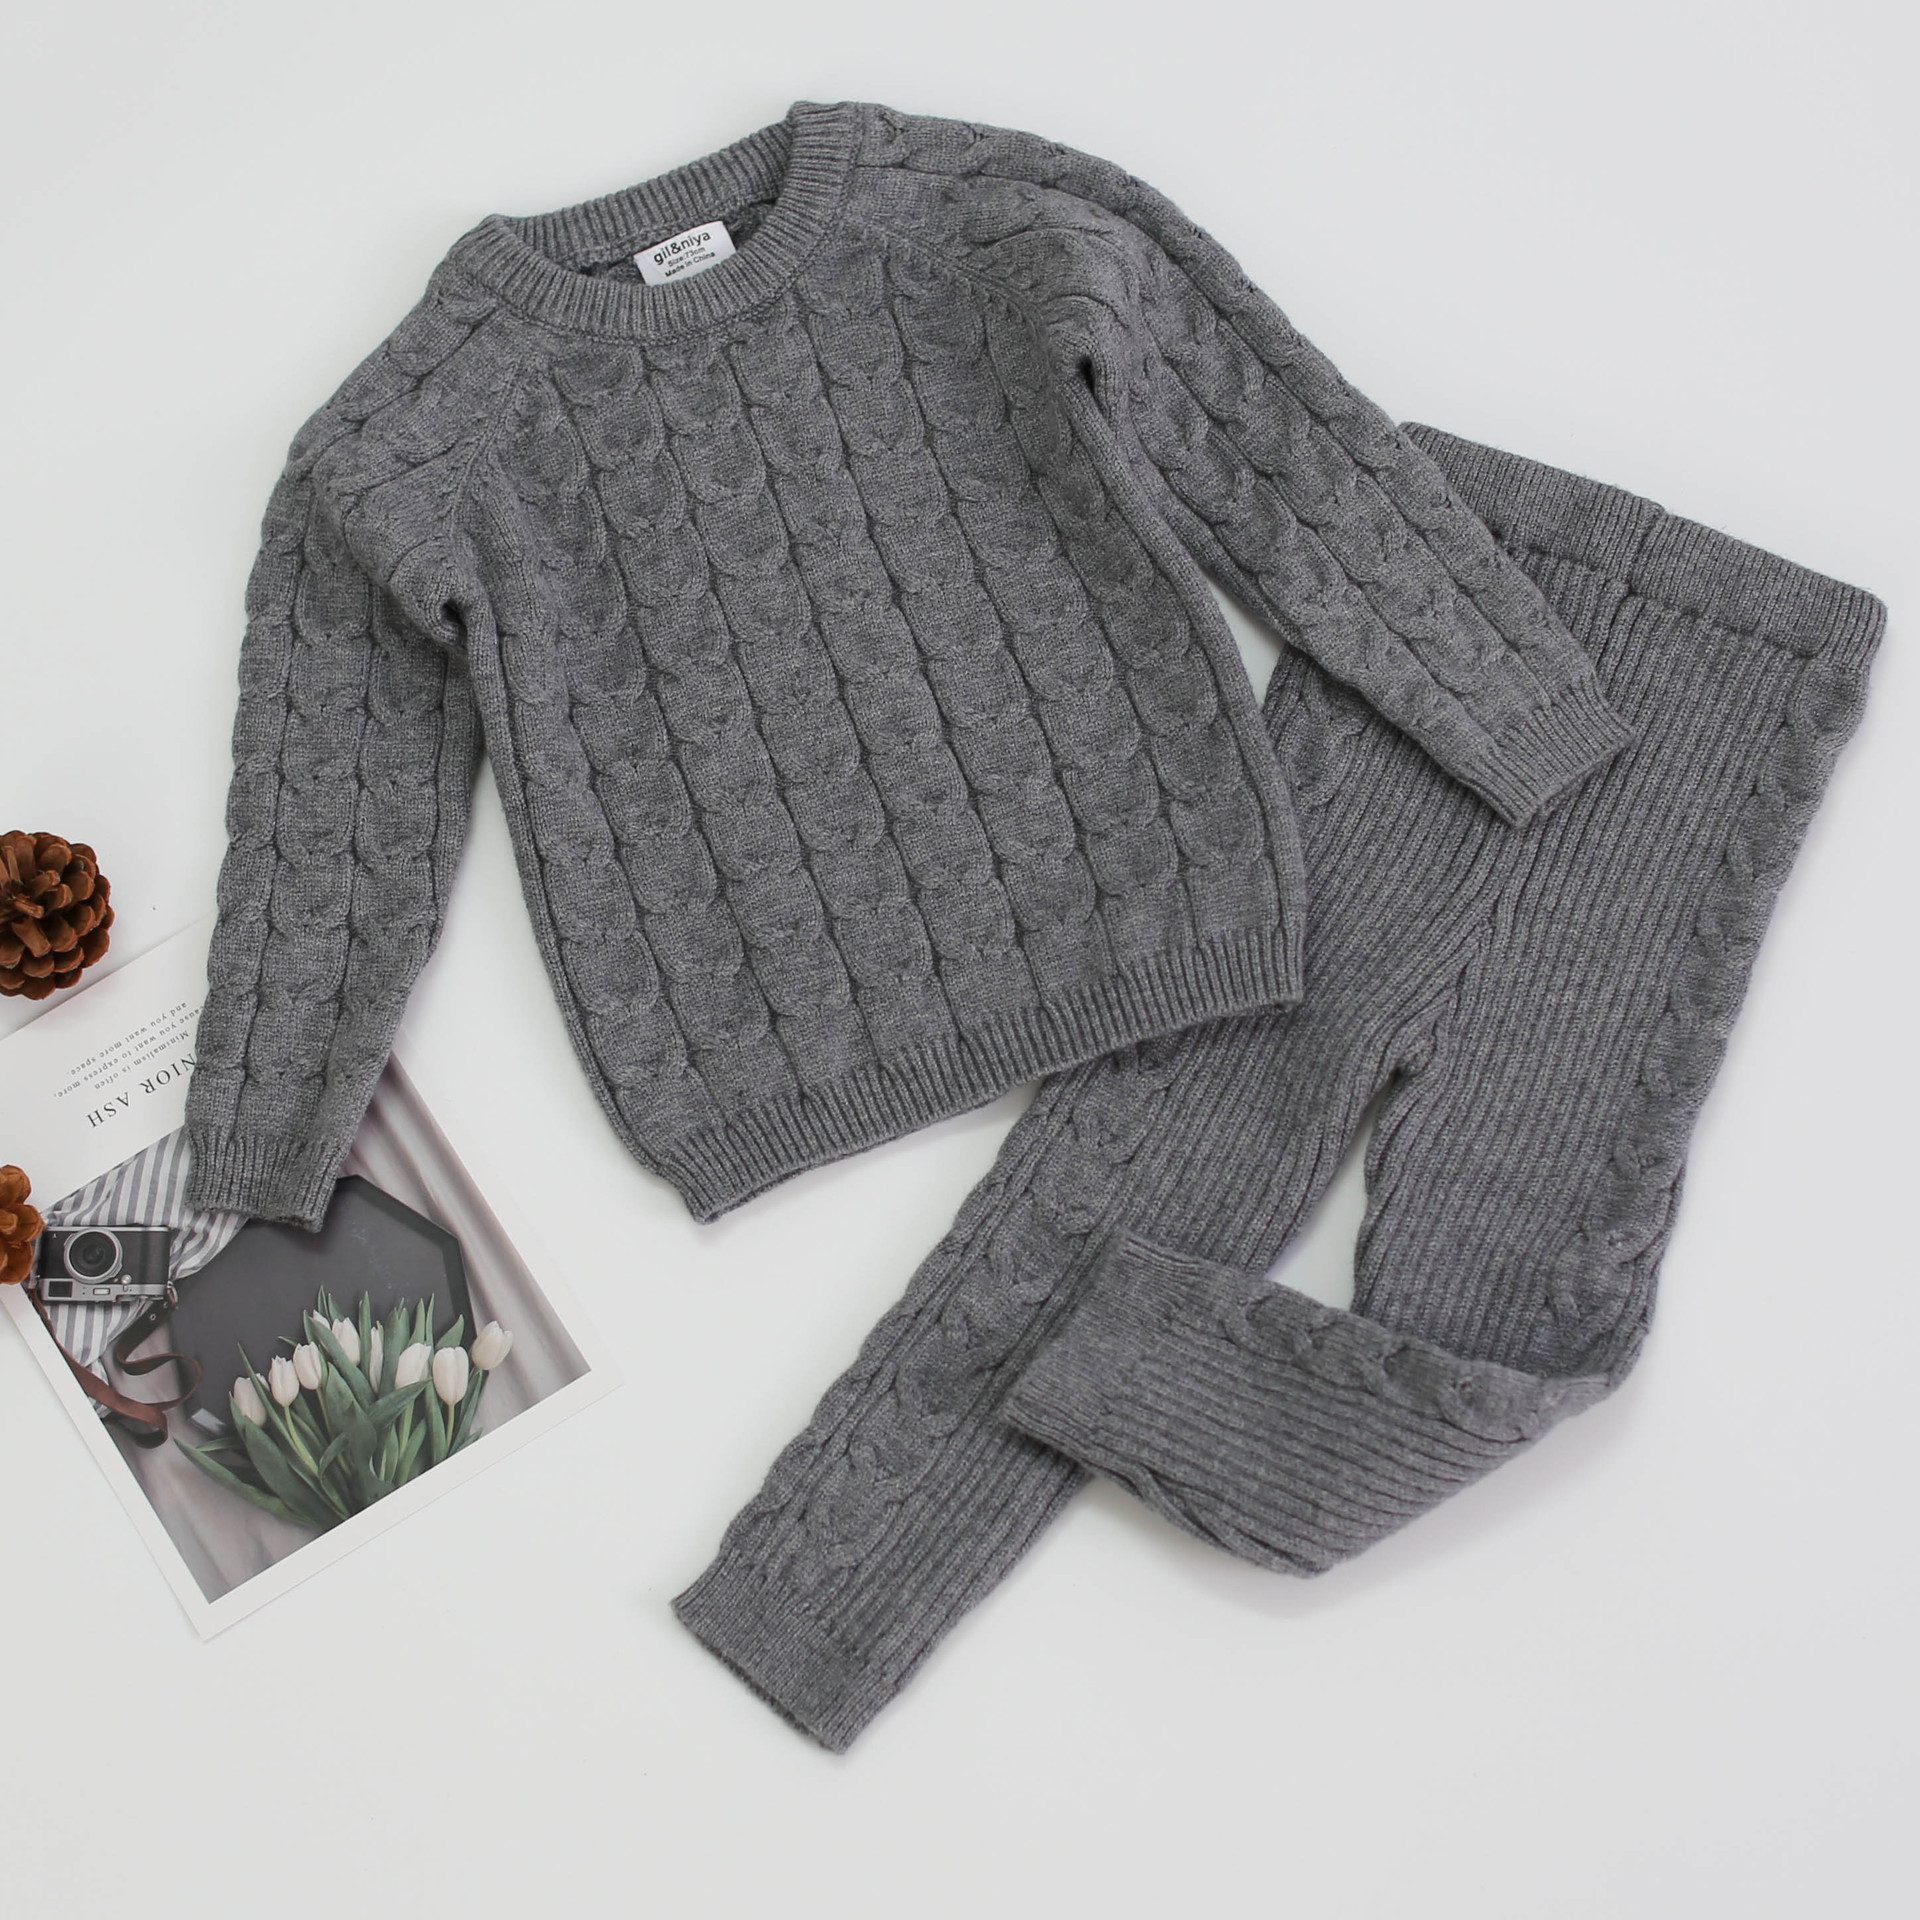 Baby Girls Boys Knit Suit toddler children Clothing Sets Winter knitting Pullover Sweater+Pants Infant kids Tracksuits pink gray 3